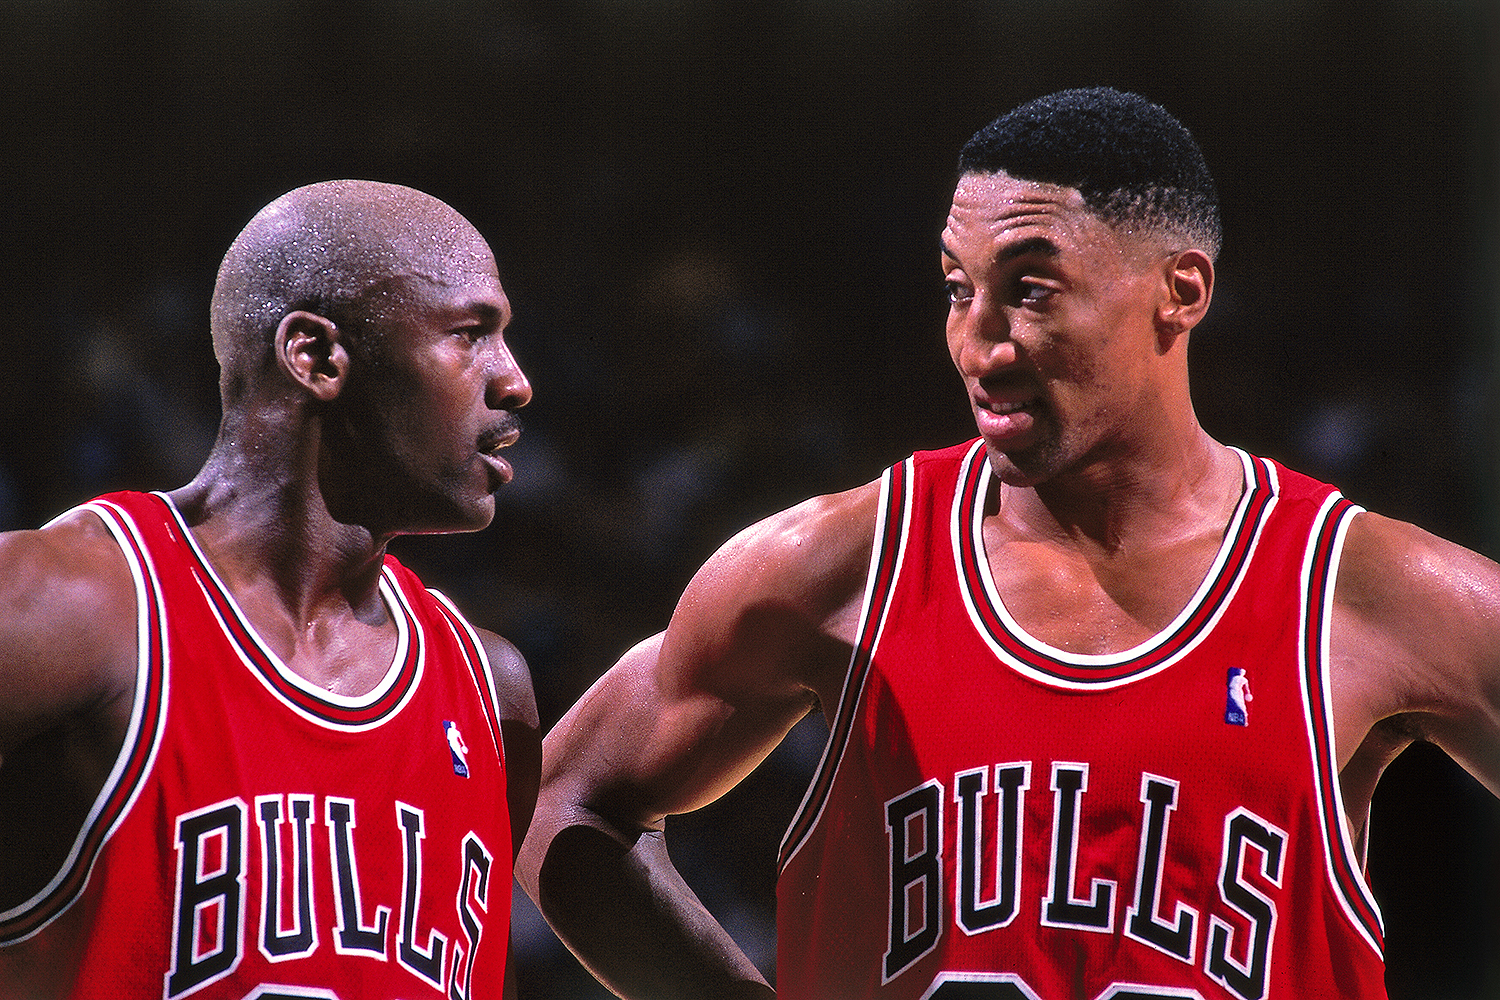 Michael Jordan, Scottie Pippen